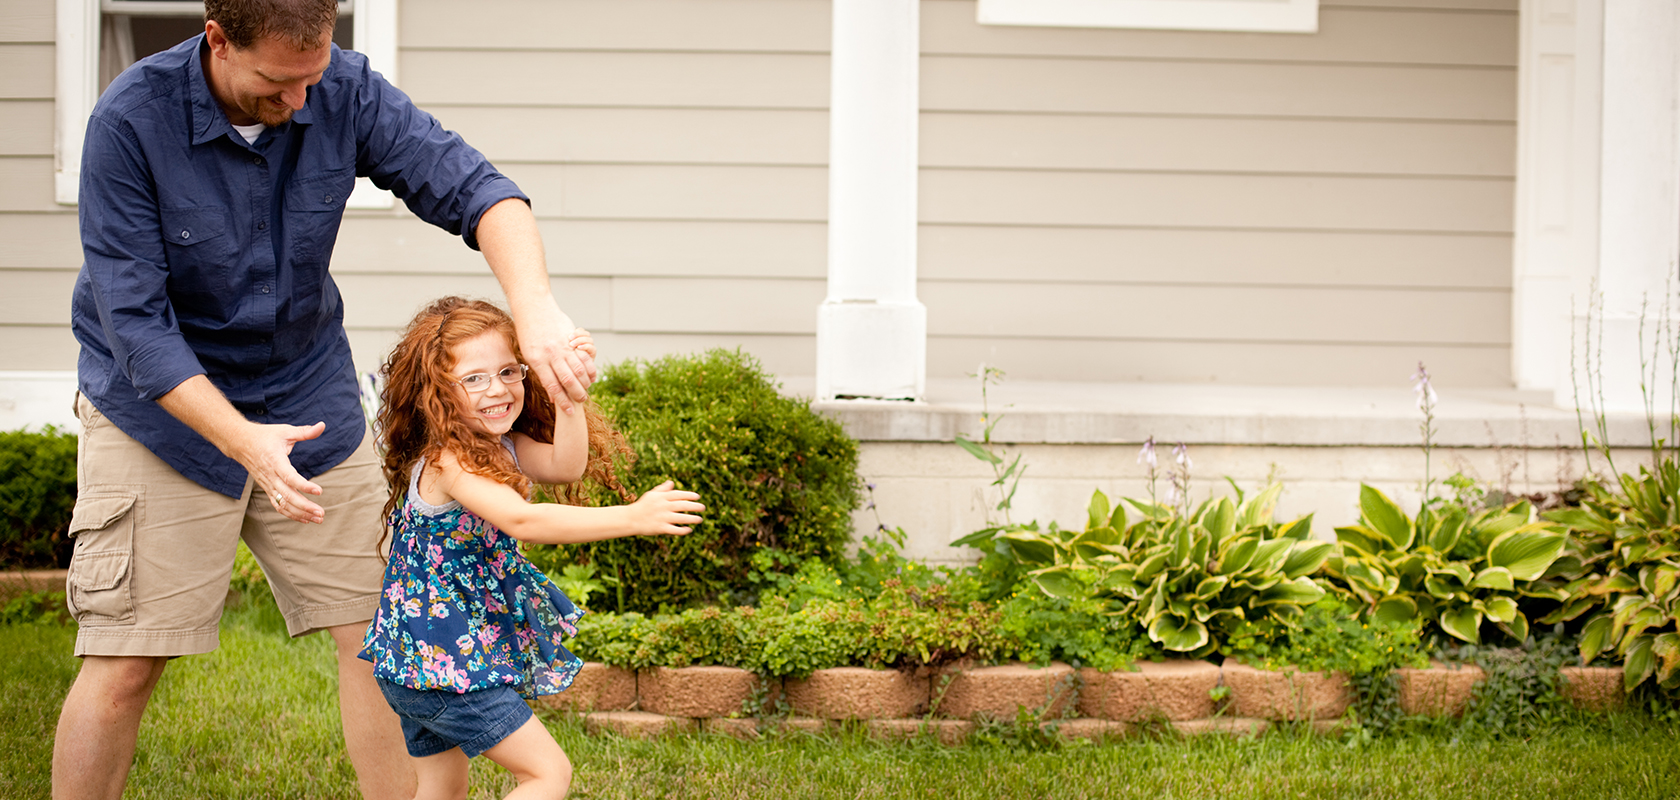 father dancing with daughter in yard